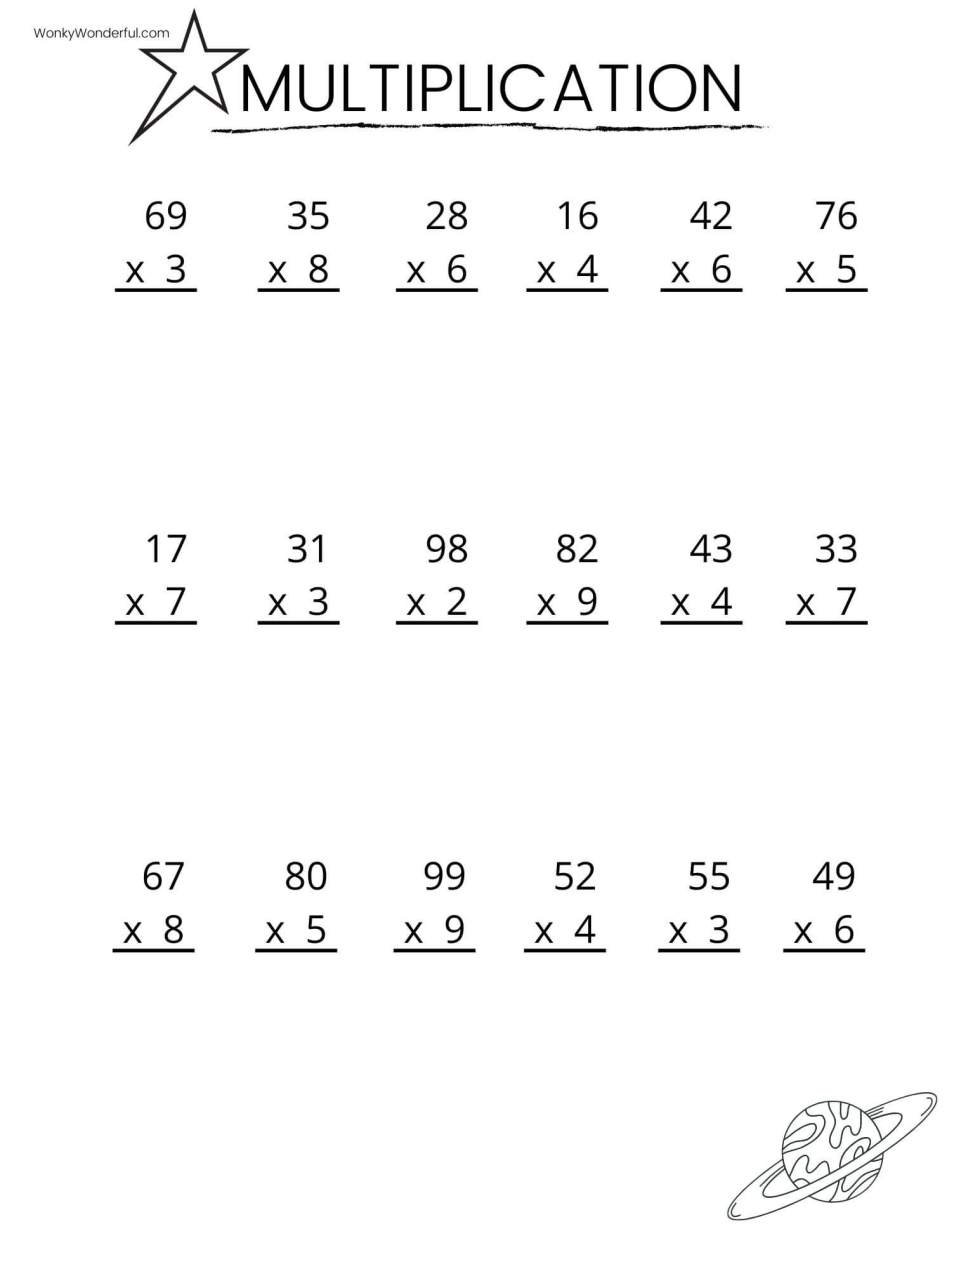 2nd page of multiplication packet